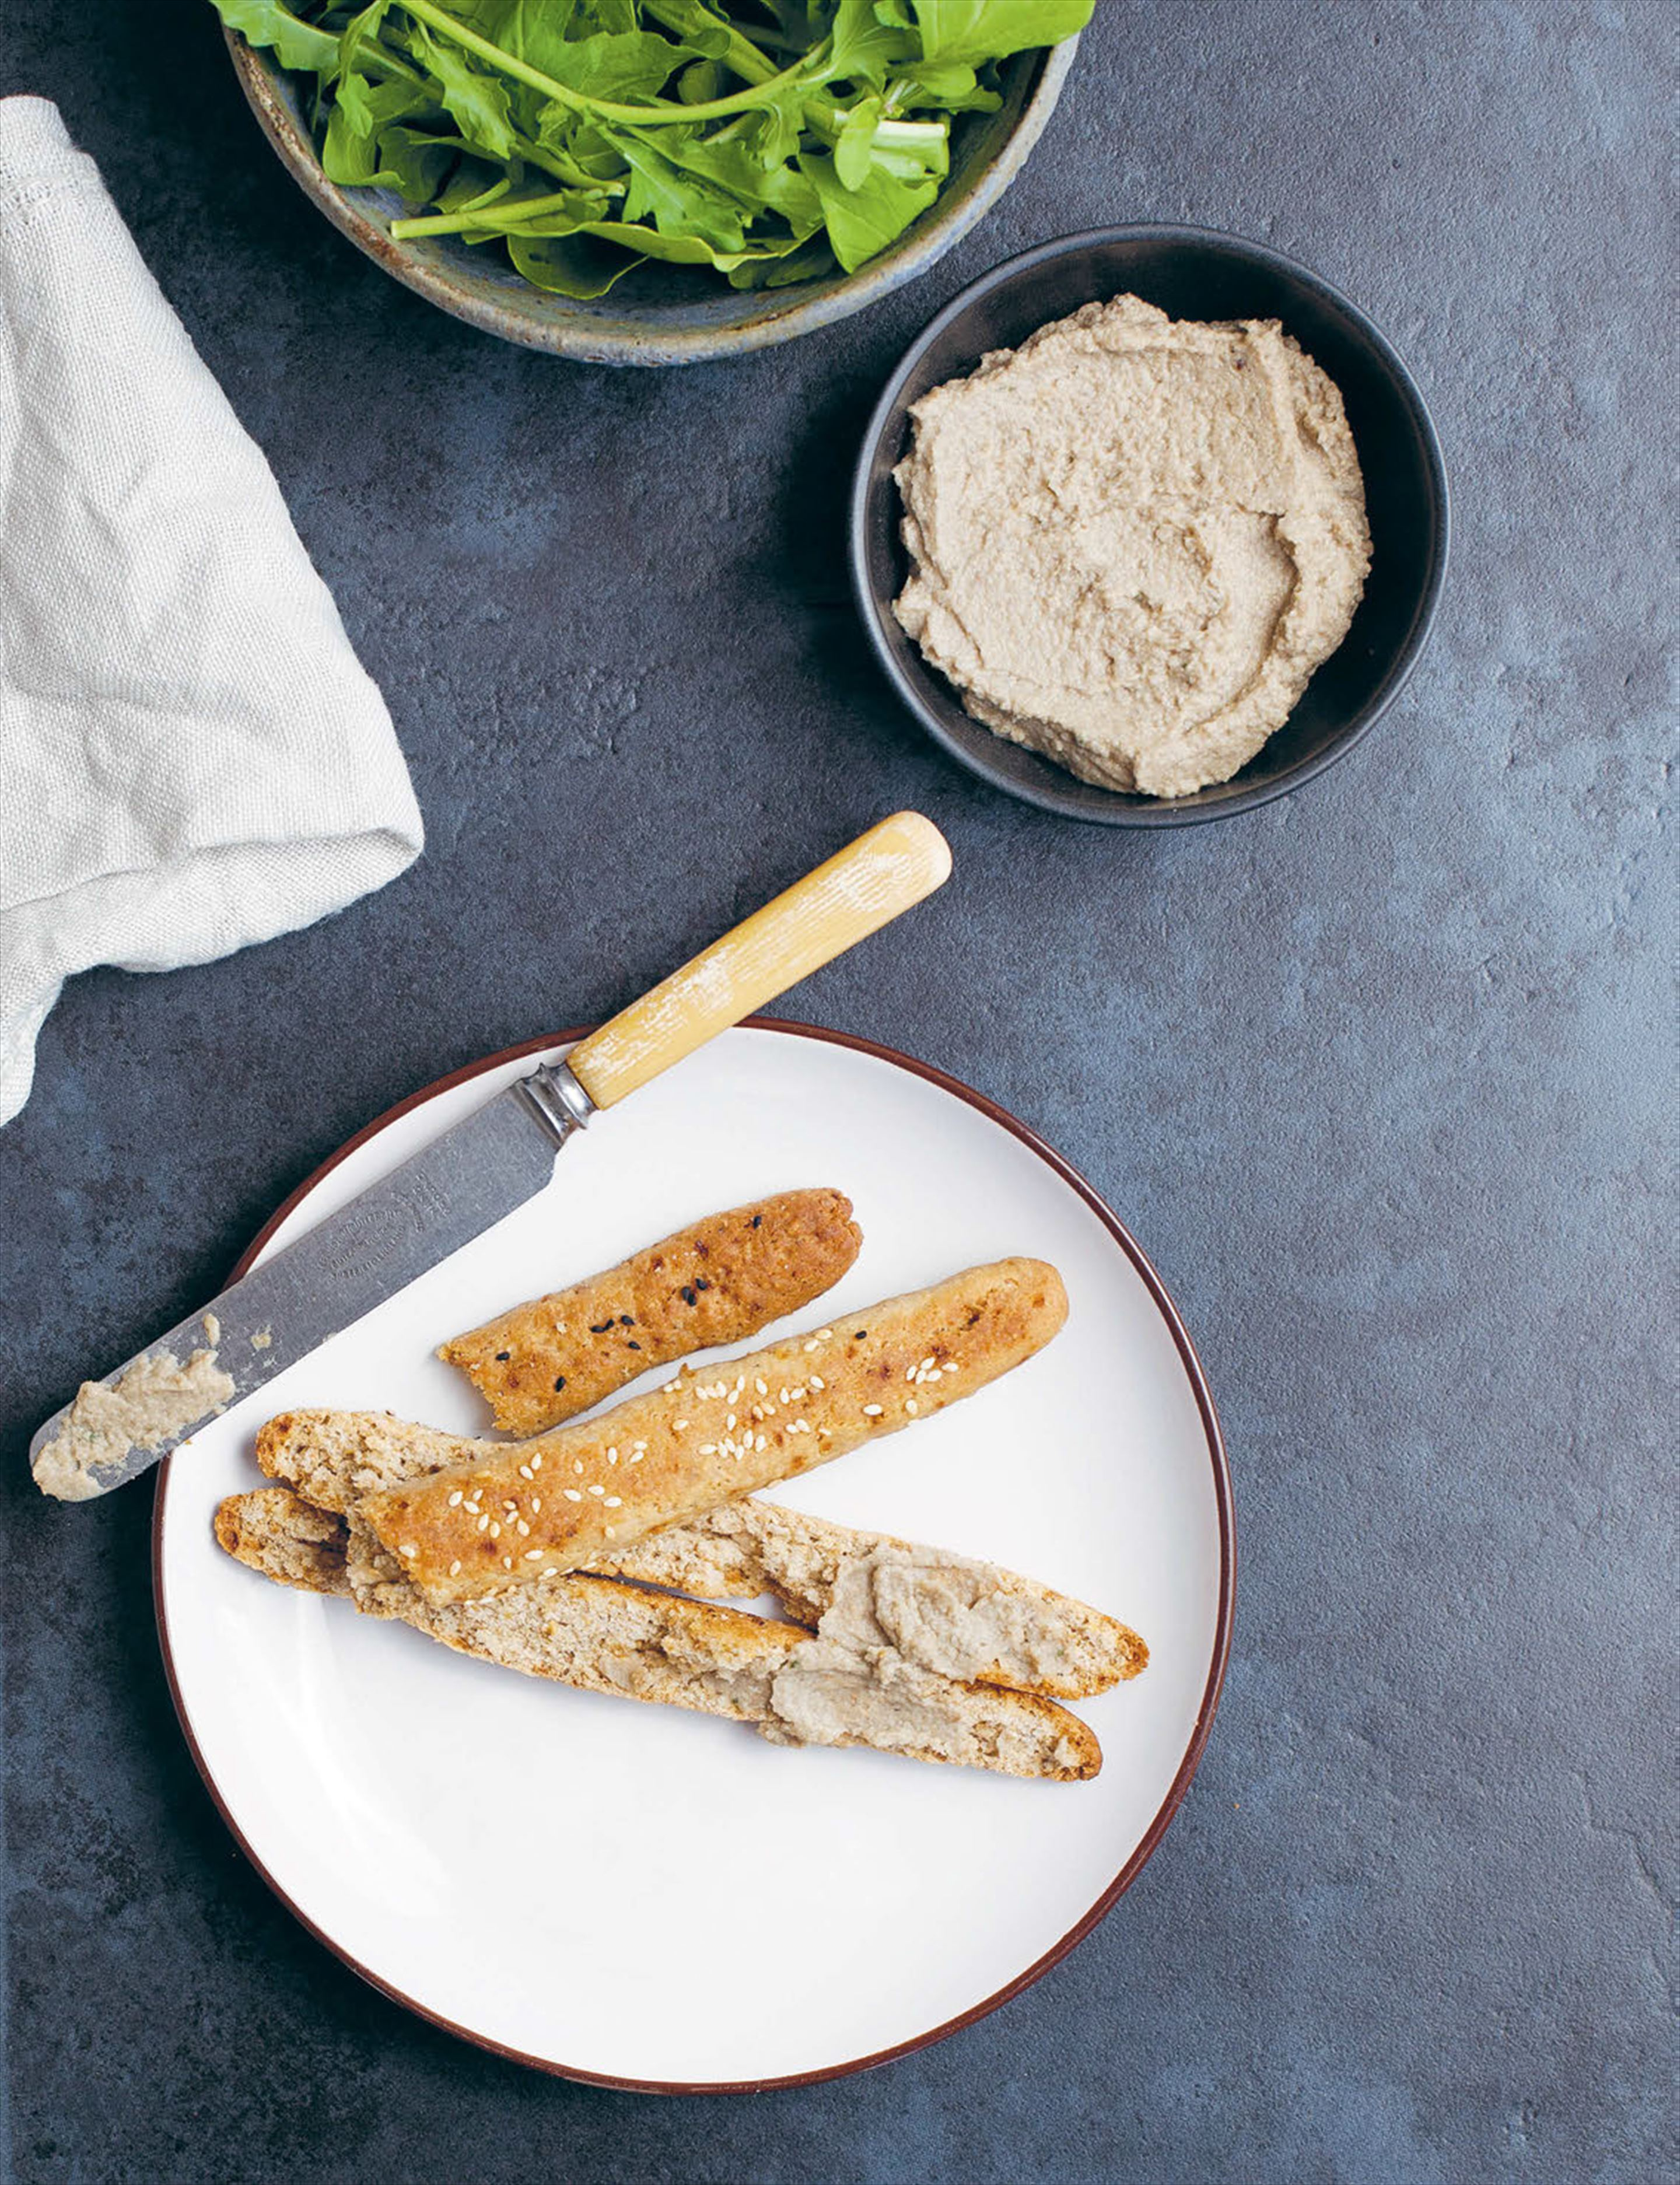 Mushroom pâté with crispy breadsticks